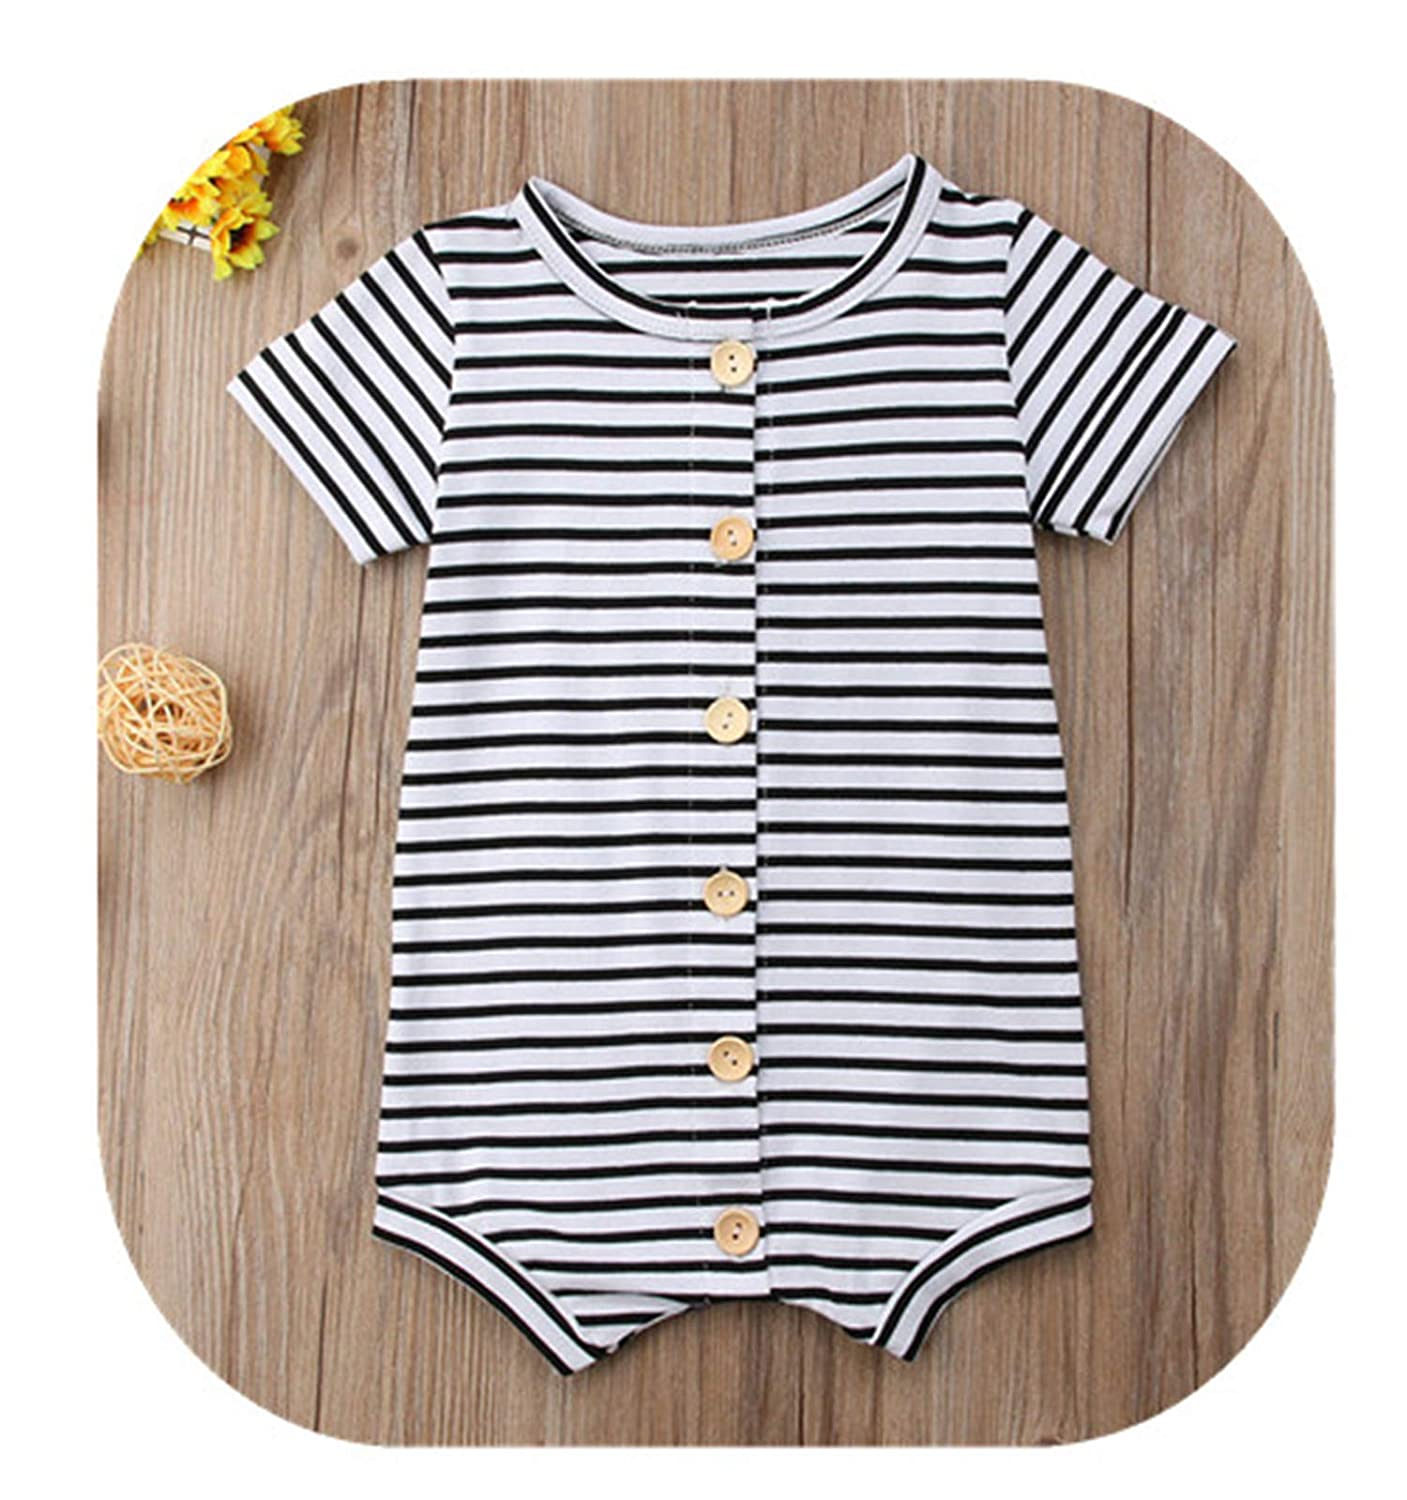 Newborn Toddler Infant Baby Boys Girl Casual Romper Jumpsuit Cotton Short Sleeve Clothes